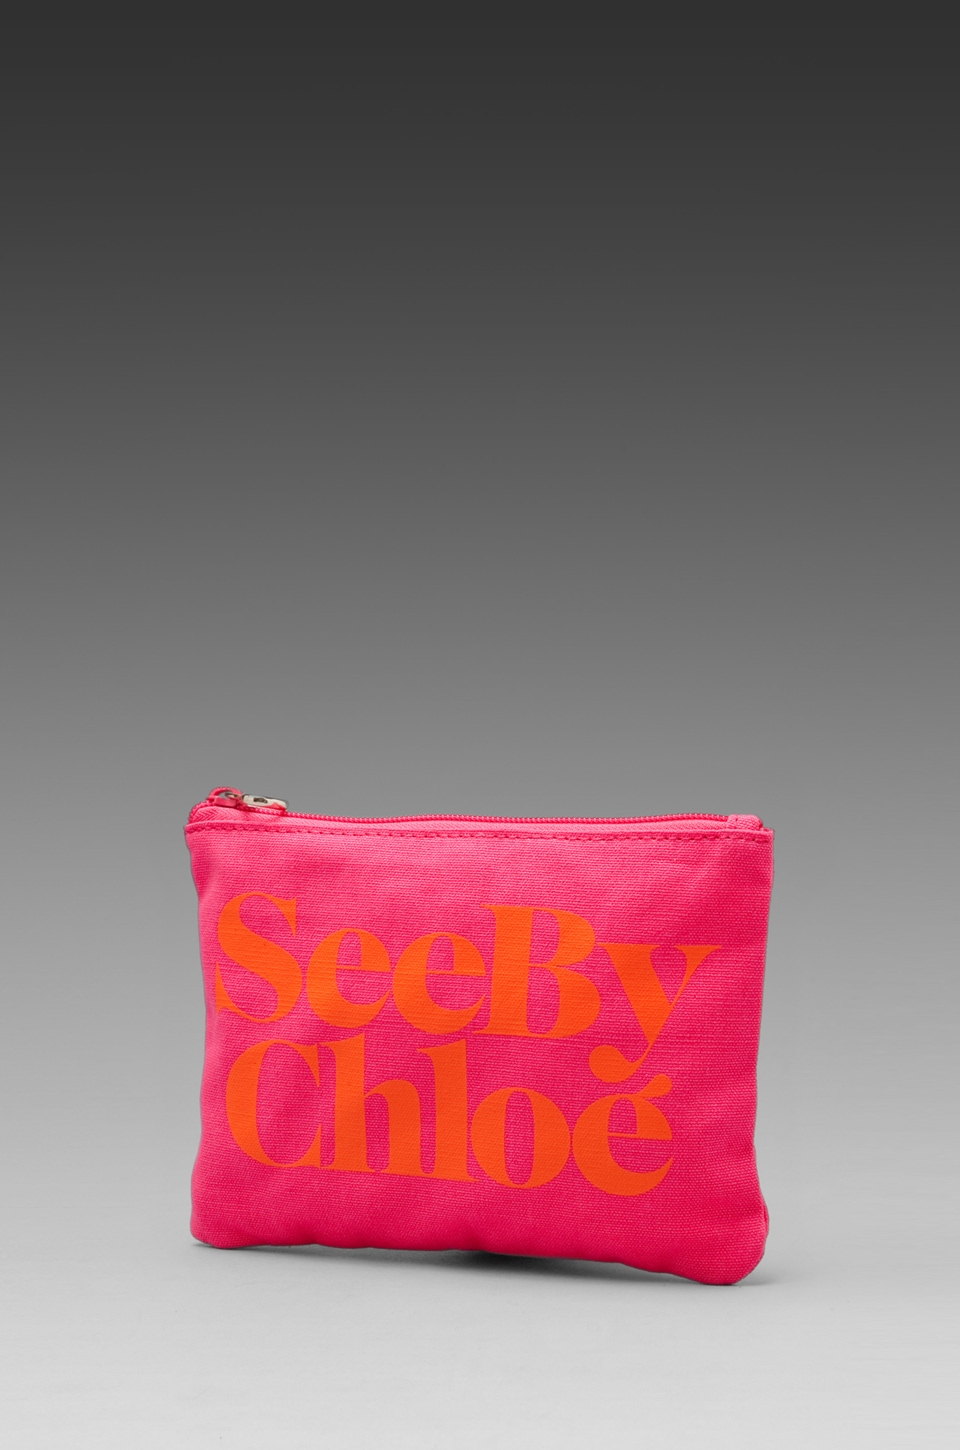 See By Chloe Gimmick Zip Pouch in Indian Pink